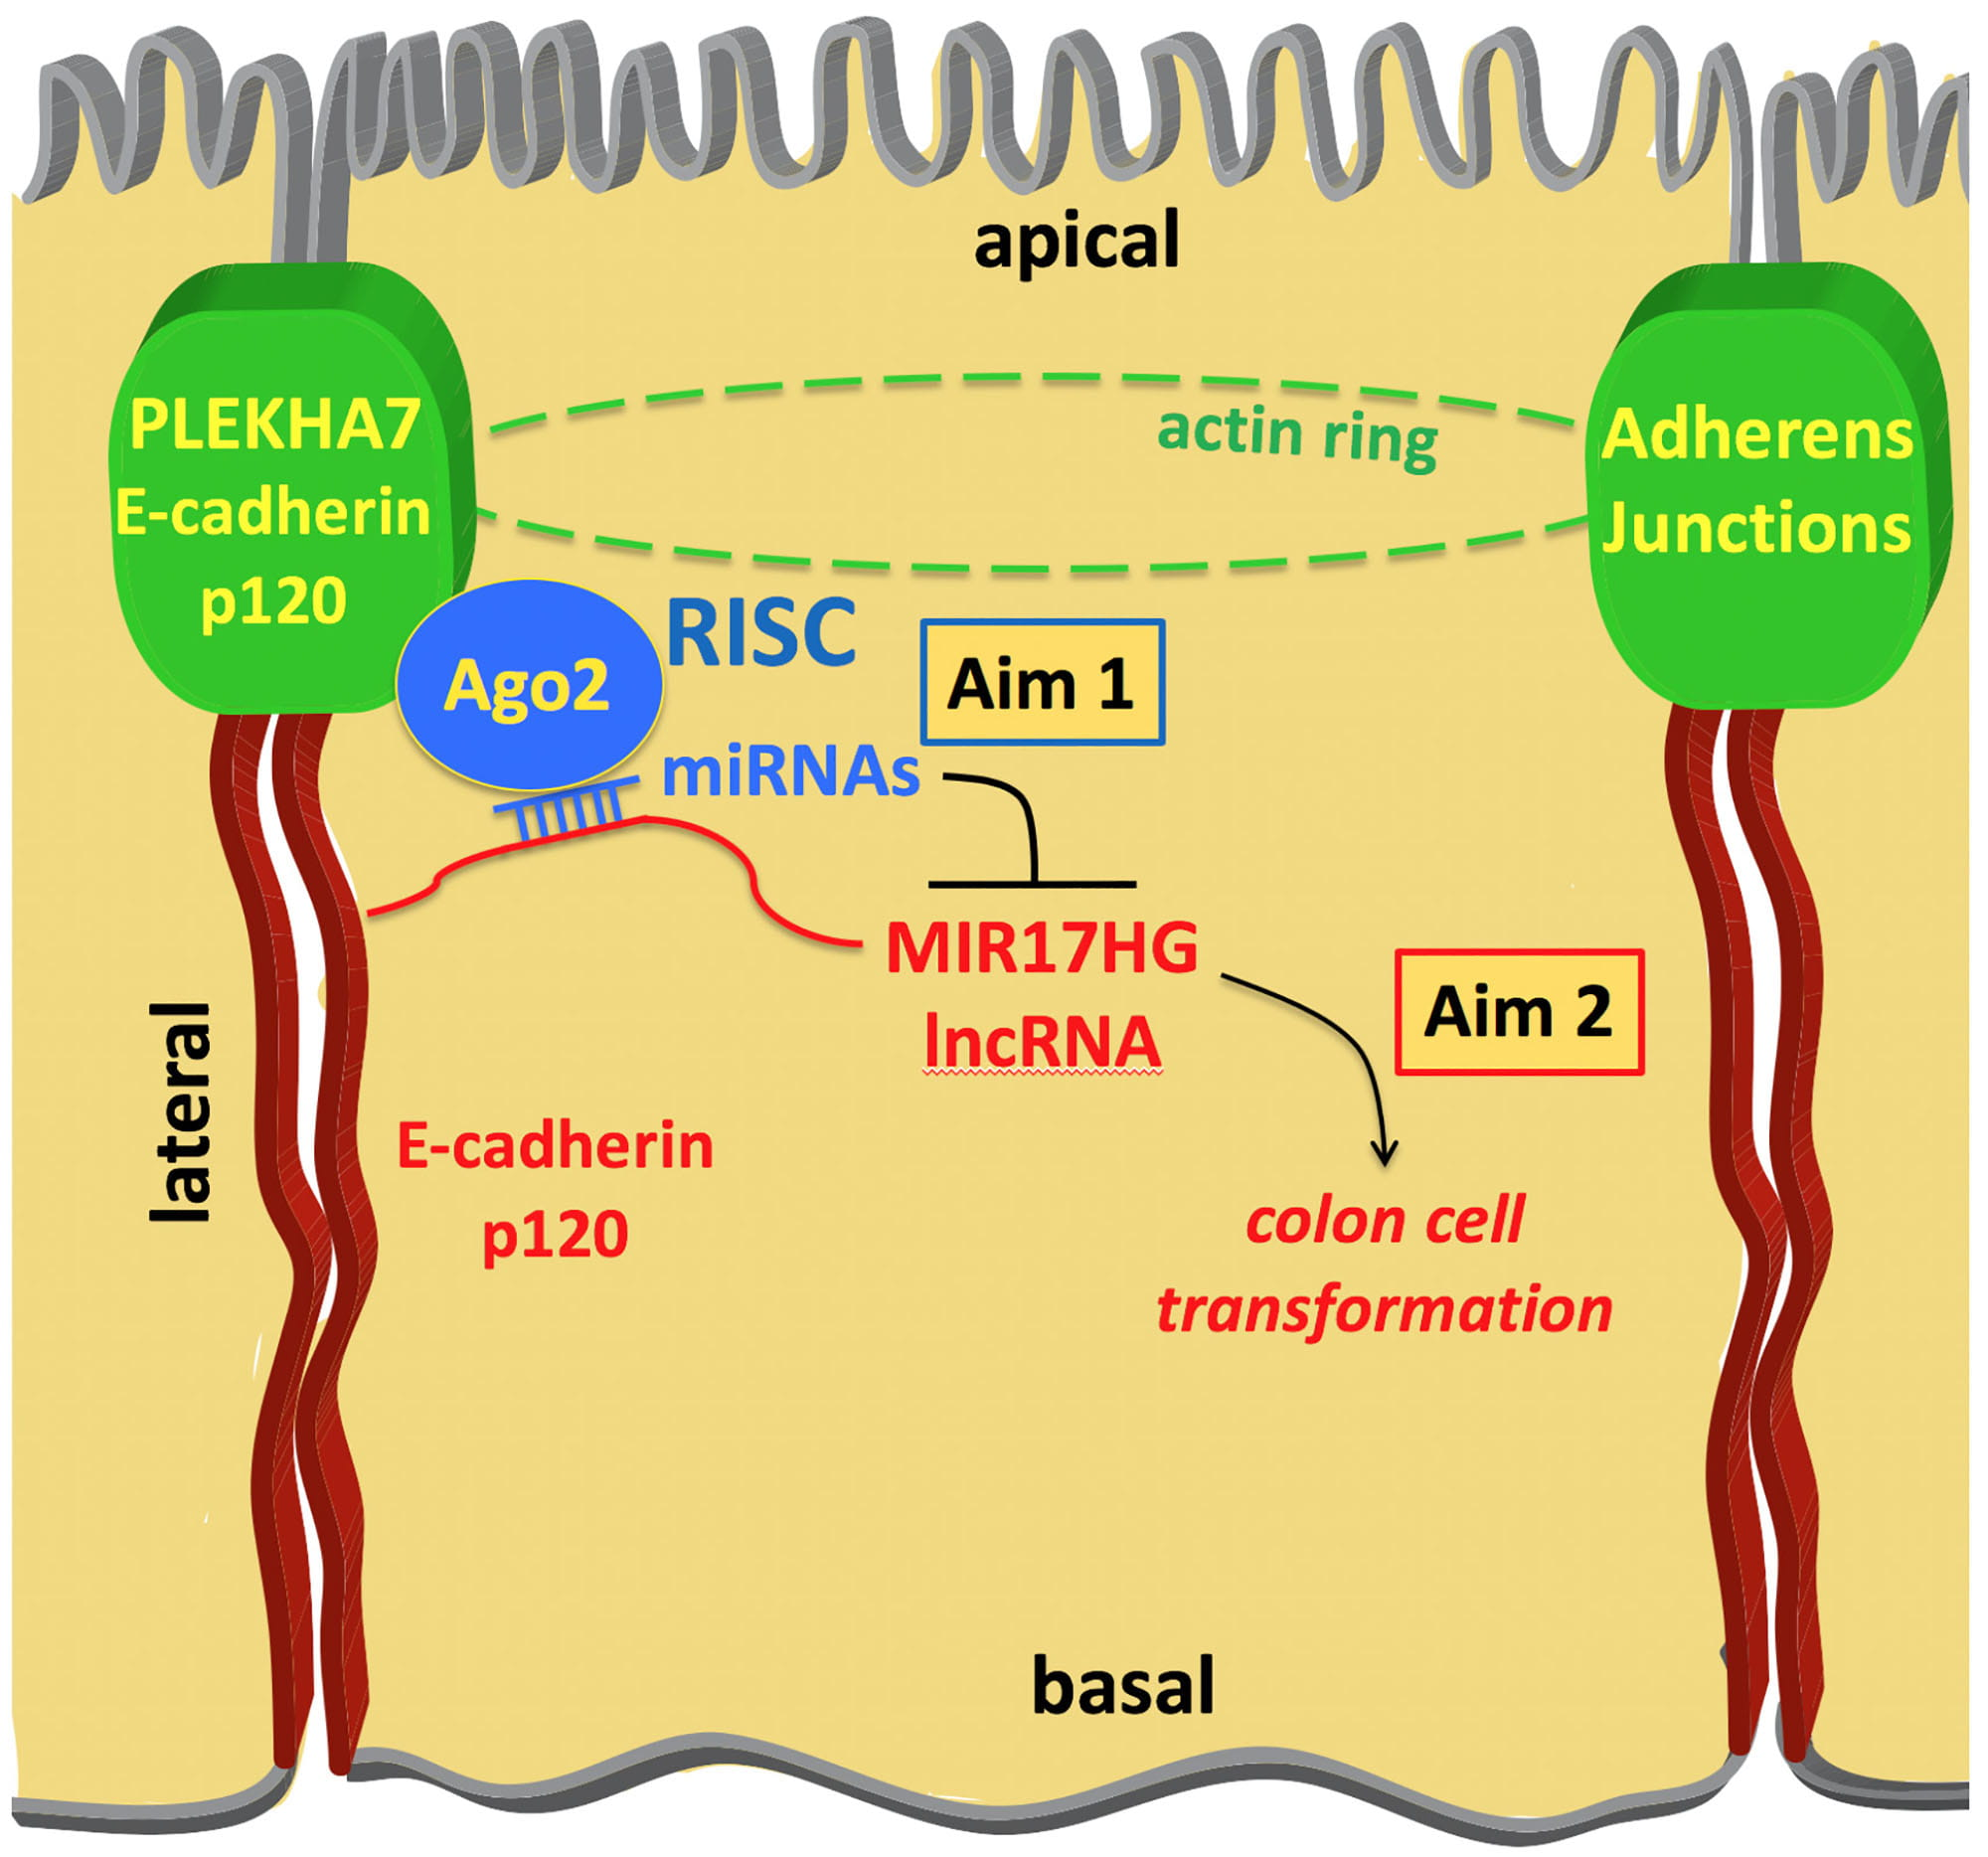 Figure 1. Outline of the proposed research. The E-cadherin - p120 catenin (p120) partner PLEKHA7 recruits the core (Ago2) and accessory components of the RNA-induced silencing complex (RISC), as well as miRNAs and lncRNAs at the apical adherens junctions of colon epithelial cells. We hypothesize that through this mechanism PLEKHA7 suppresses the MIR17HG lncRNA (Aim 1) to inhibit pro-tumorigenic cell behavior and maintain the normal epithelial phenotype (Aim 2).